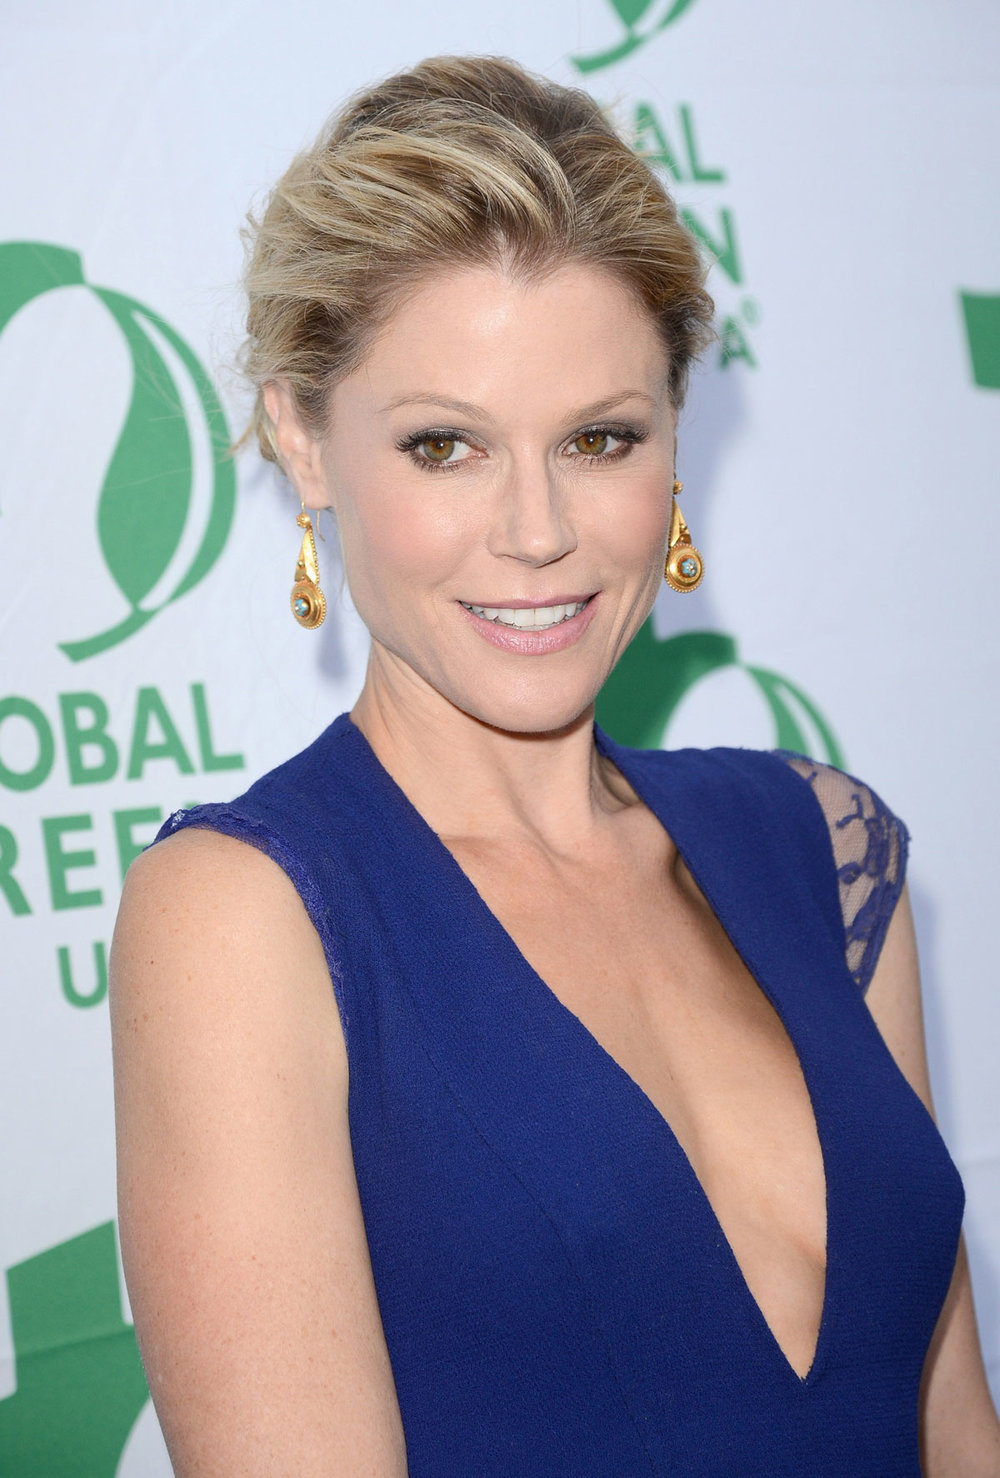 JULIE-BOWEN-at16th-Annual-Global-Green-USA-Millennium-Awards-in-Santa-Monica-3.jpg